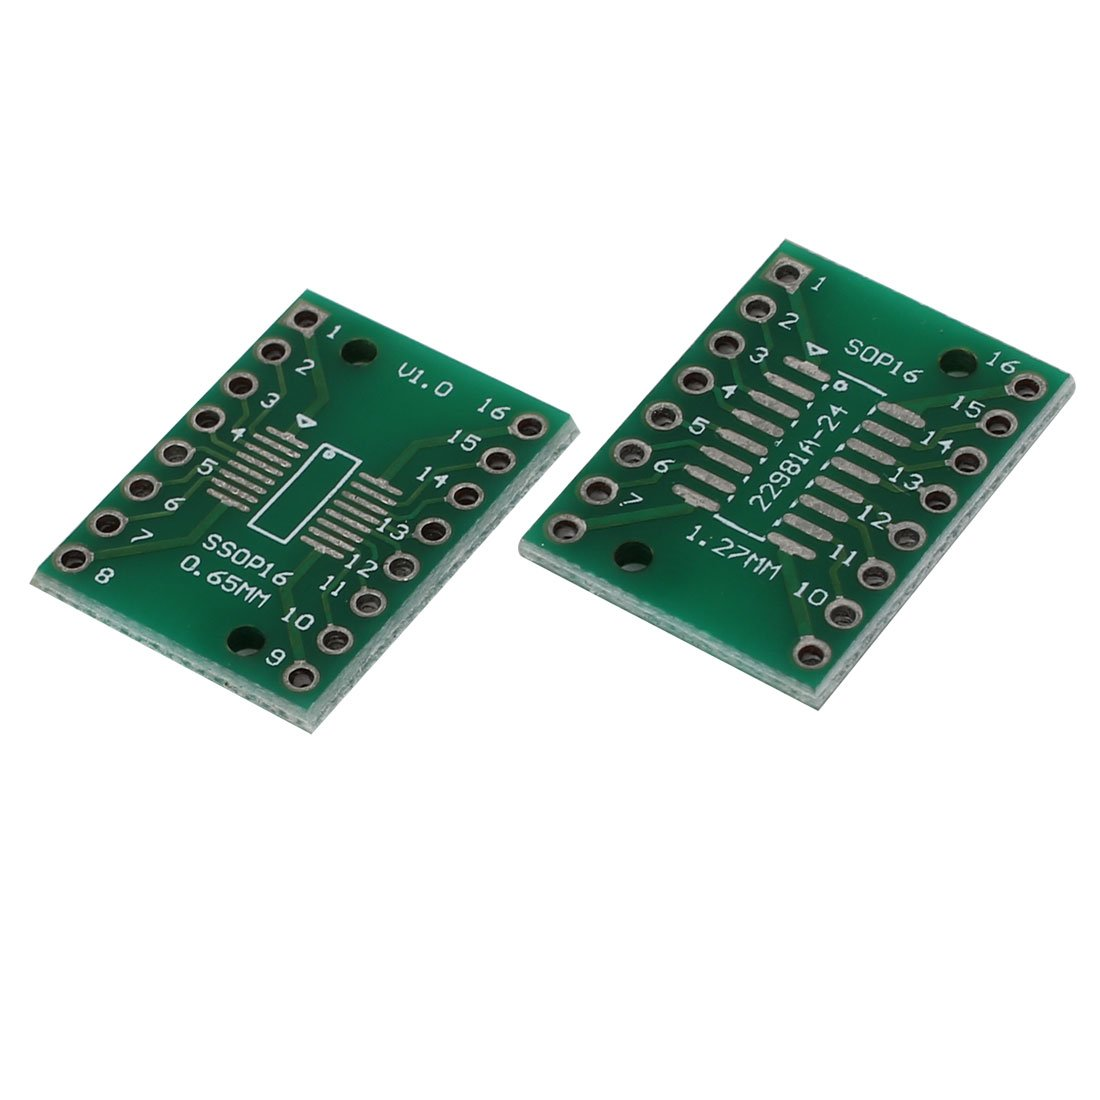 uxcell 2 Pcs 21mmx16mm SSOP16 16P 1.27mm to 0.65mm DIP PCB Adapter Converter